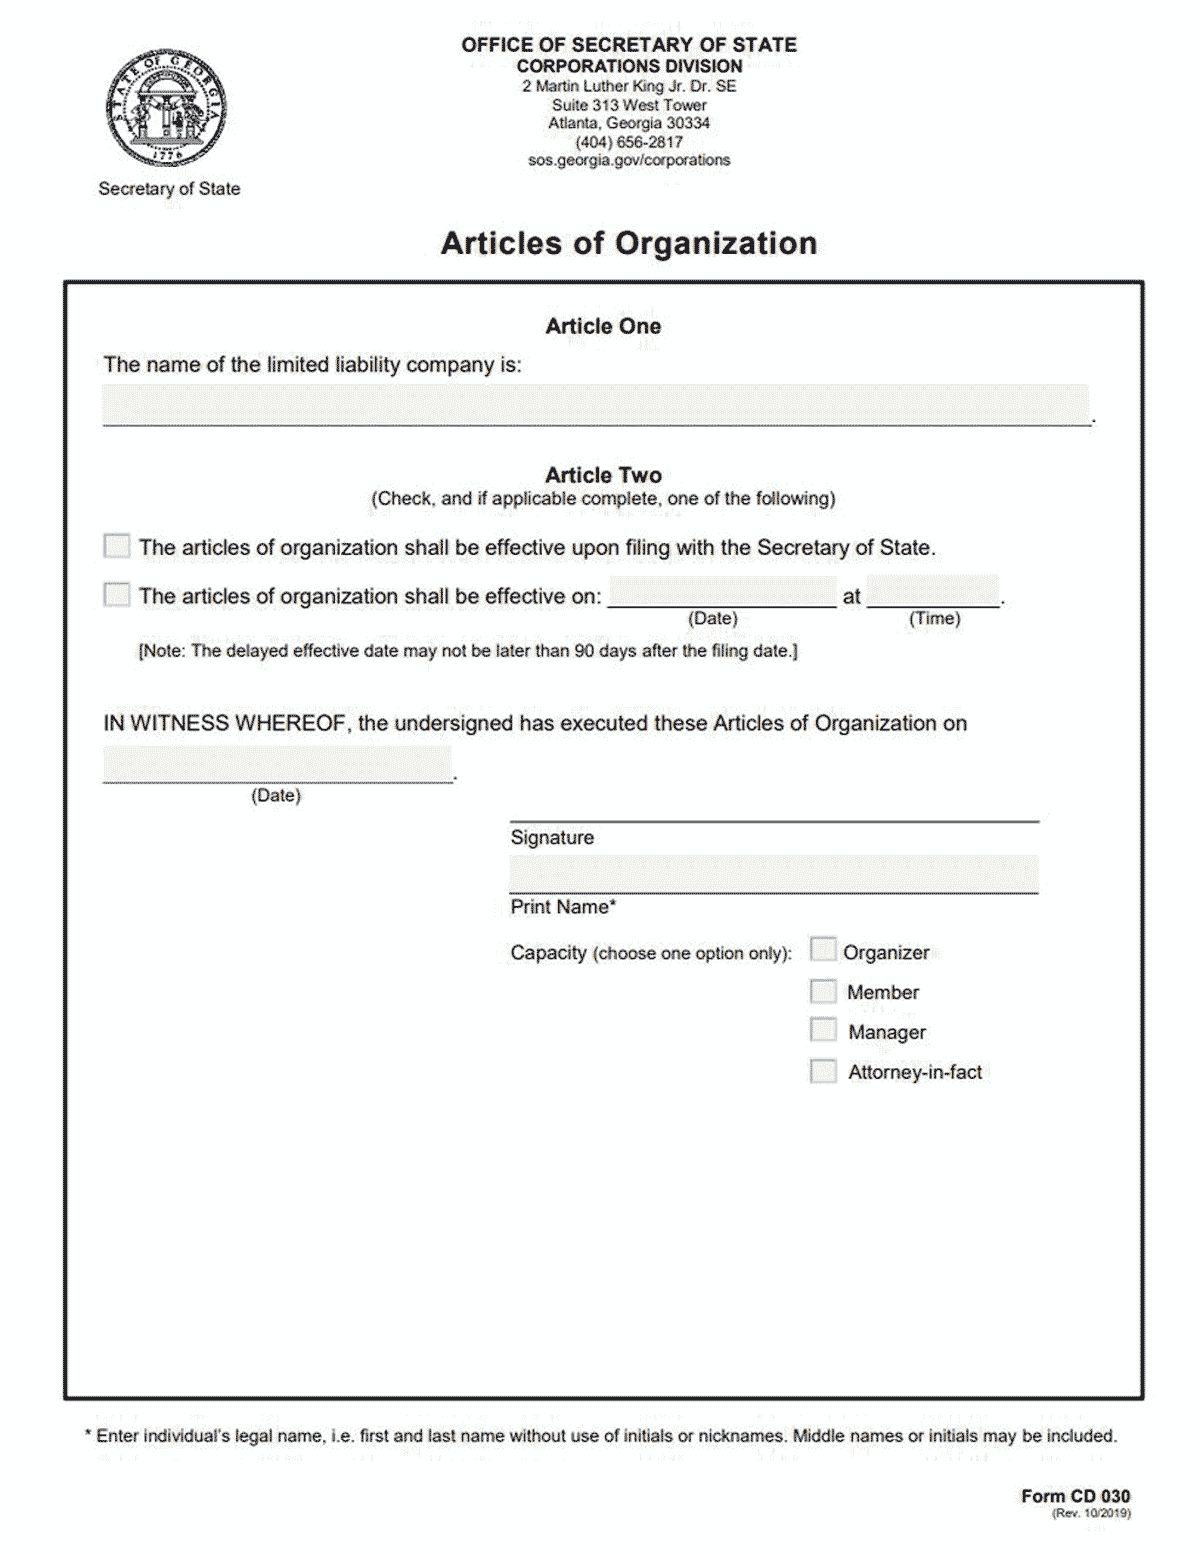 The Interesting Llc Georgia How To Form An Llc In Georgia For Llc Articles Of Organization Template Photograp Best Templates Professional Templates Templates Llc articles of organization template